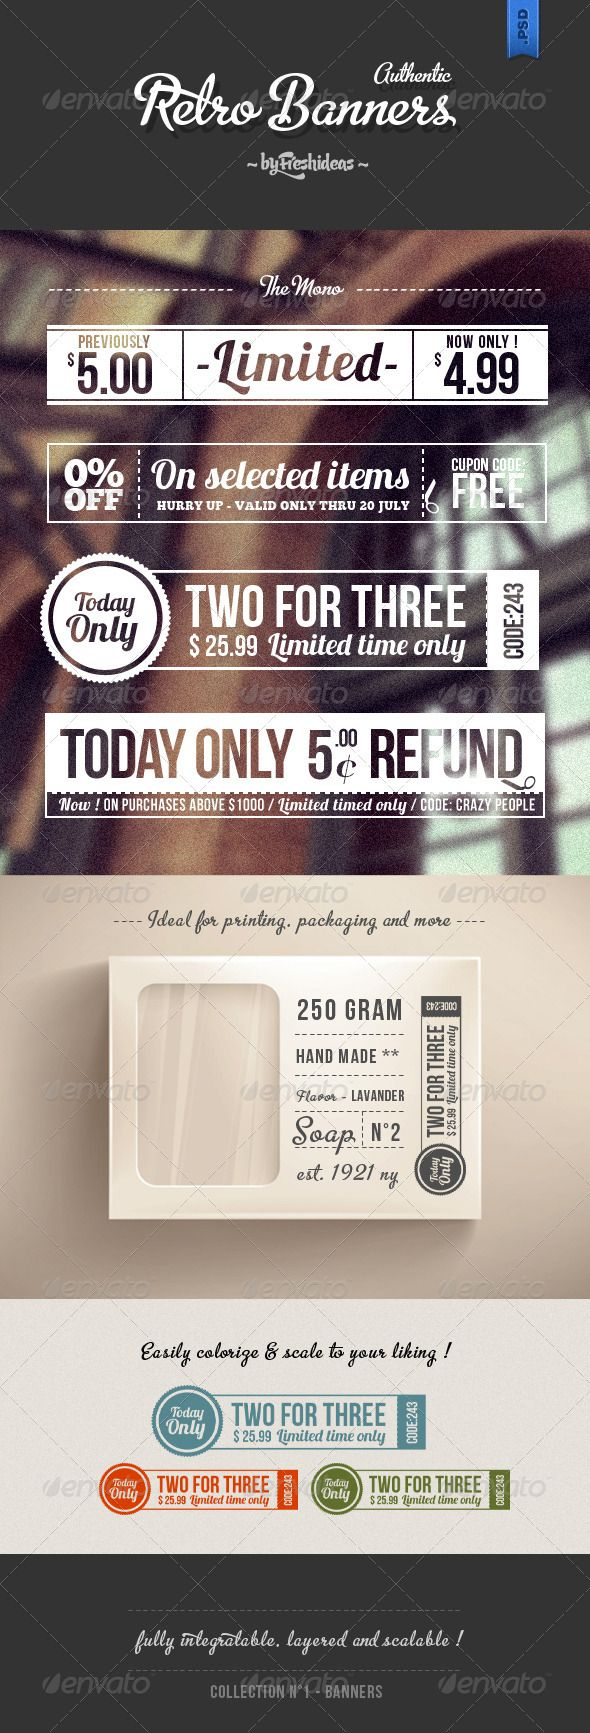 Set of 4 Retro Web Banners Template PSD | Buy and Download: http://graphicriver.net/item/set-of-4-retro-banners/2910416?WT.ac=category_thumb&WT.z_author=EnjoyTheFresh&ref=ksioks